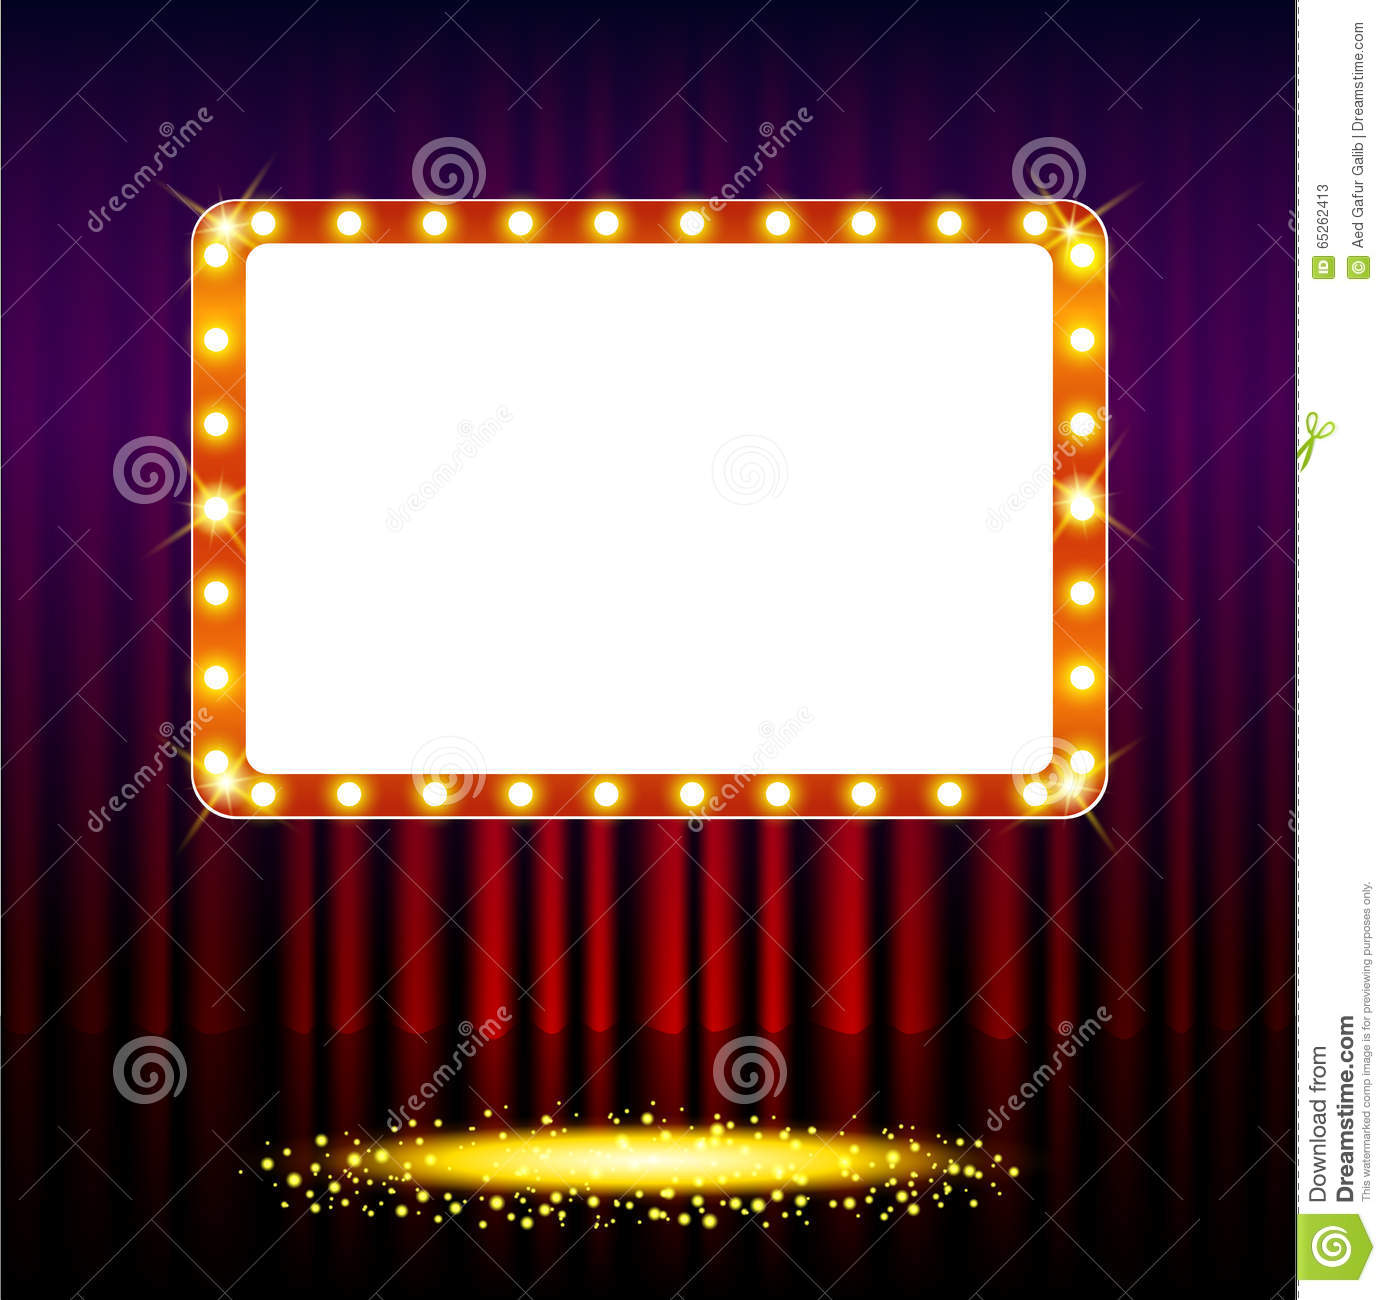 Red stage curtain with lights - Frame On Stage Curtain With Lights Stock Photos